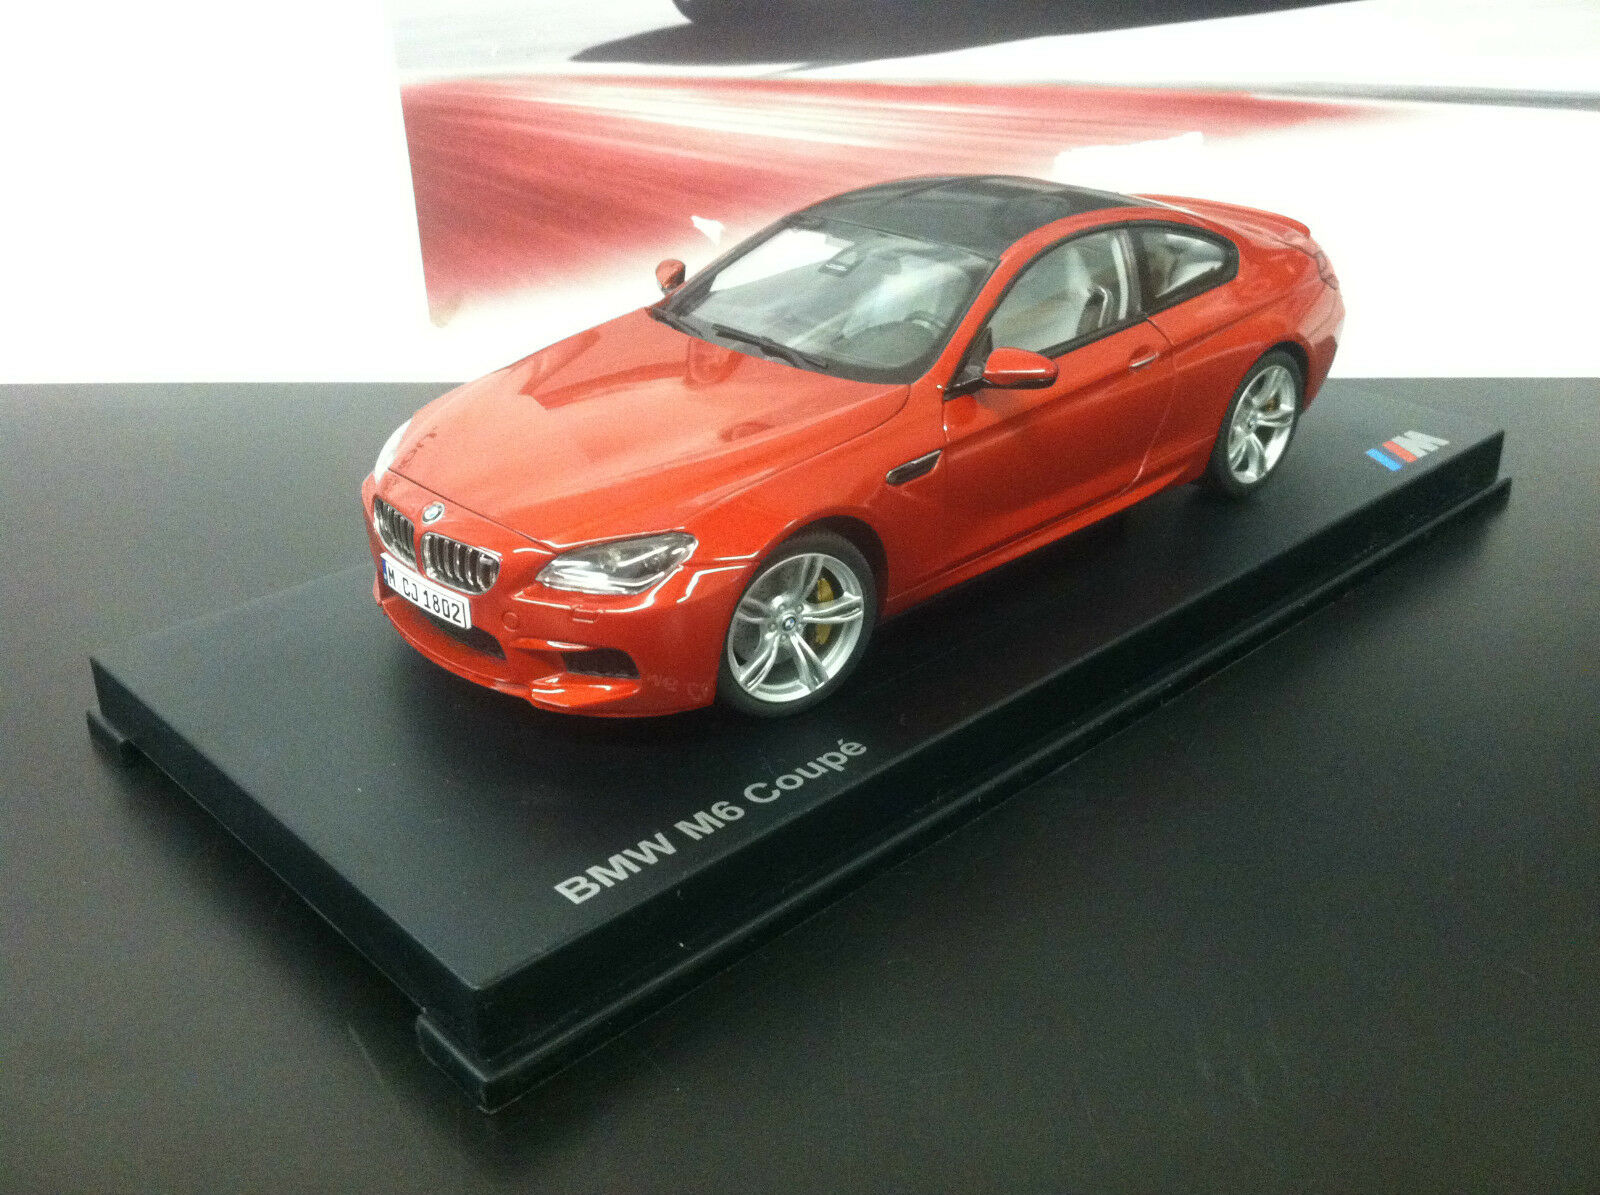 BMW M6 F13 Coupe  Sakhir orange  1 18th    Factory BMW Diecast